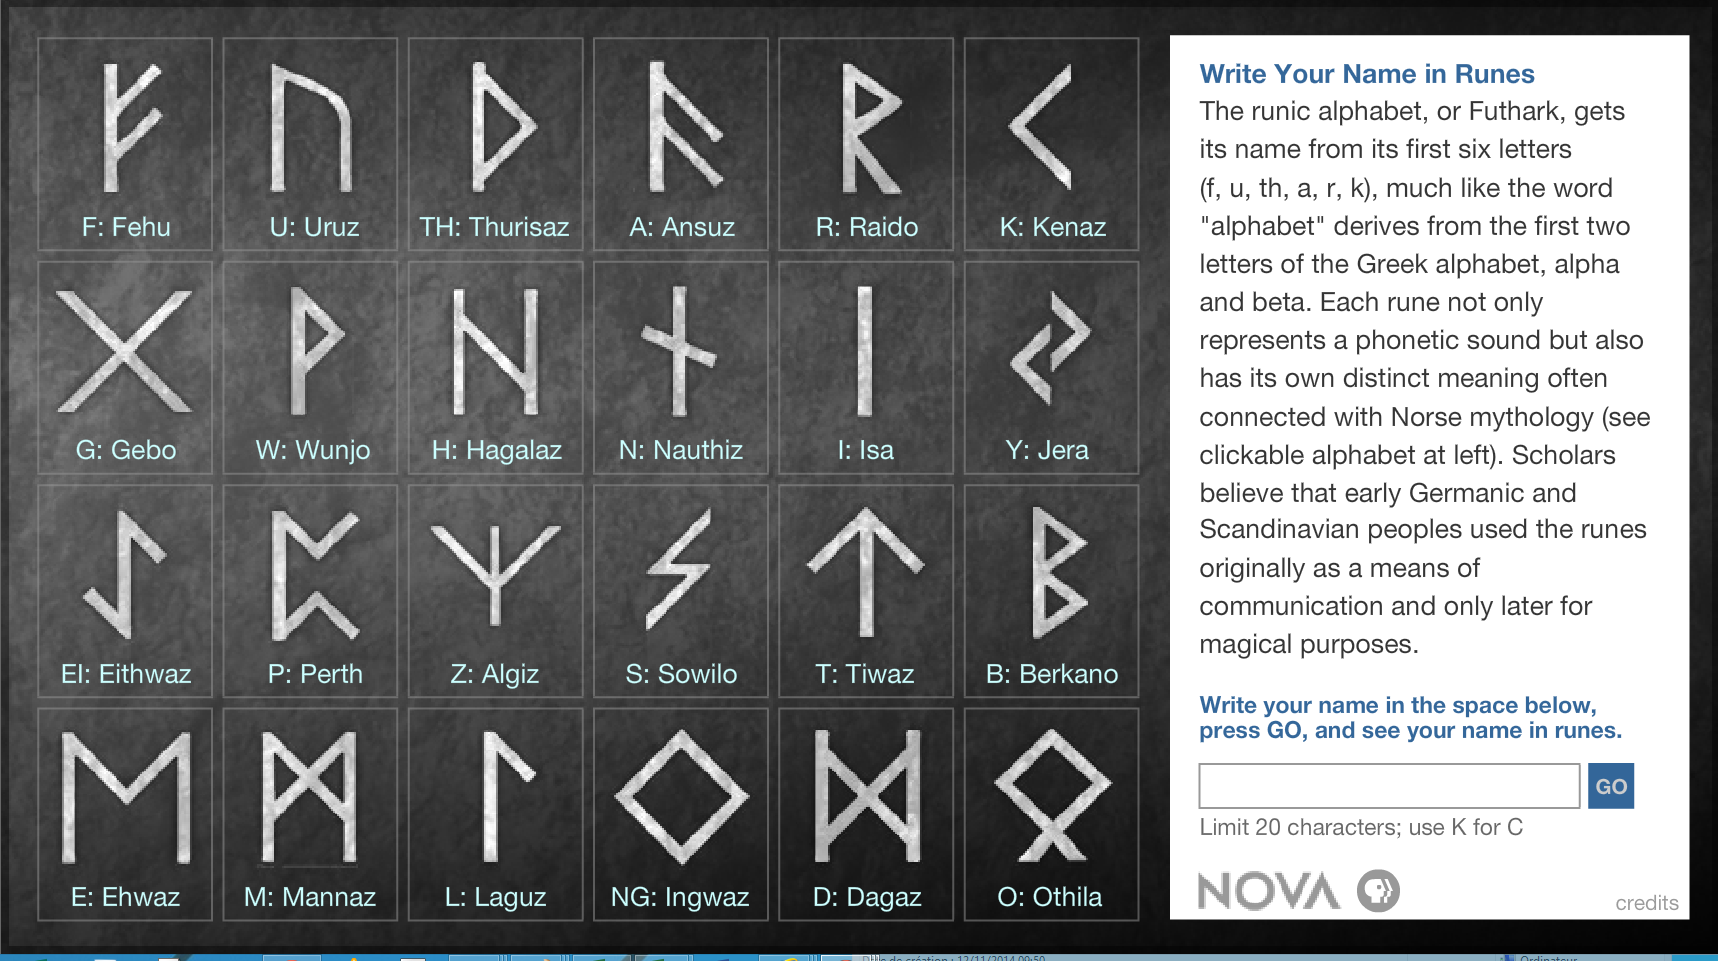 how to write my name in runes